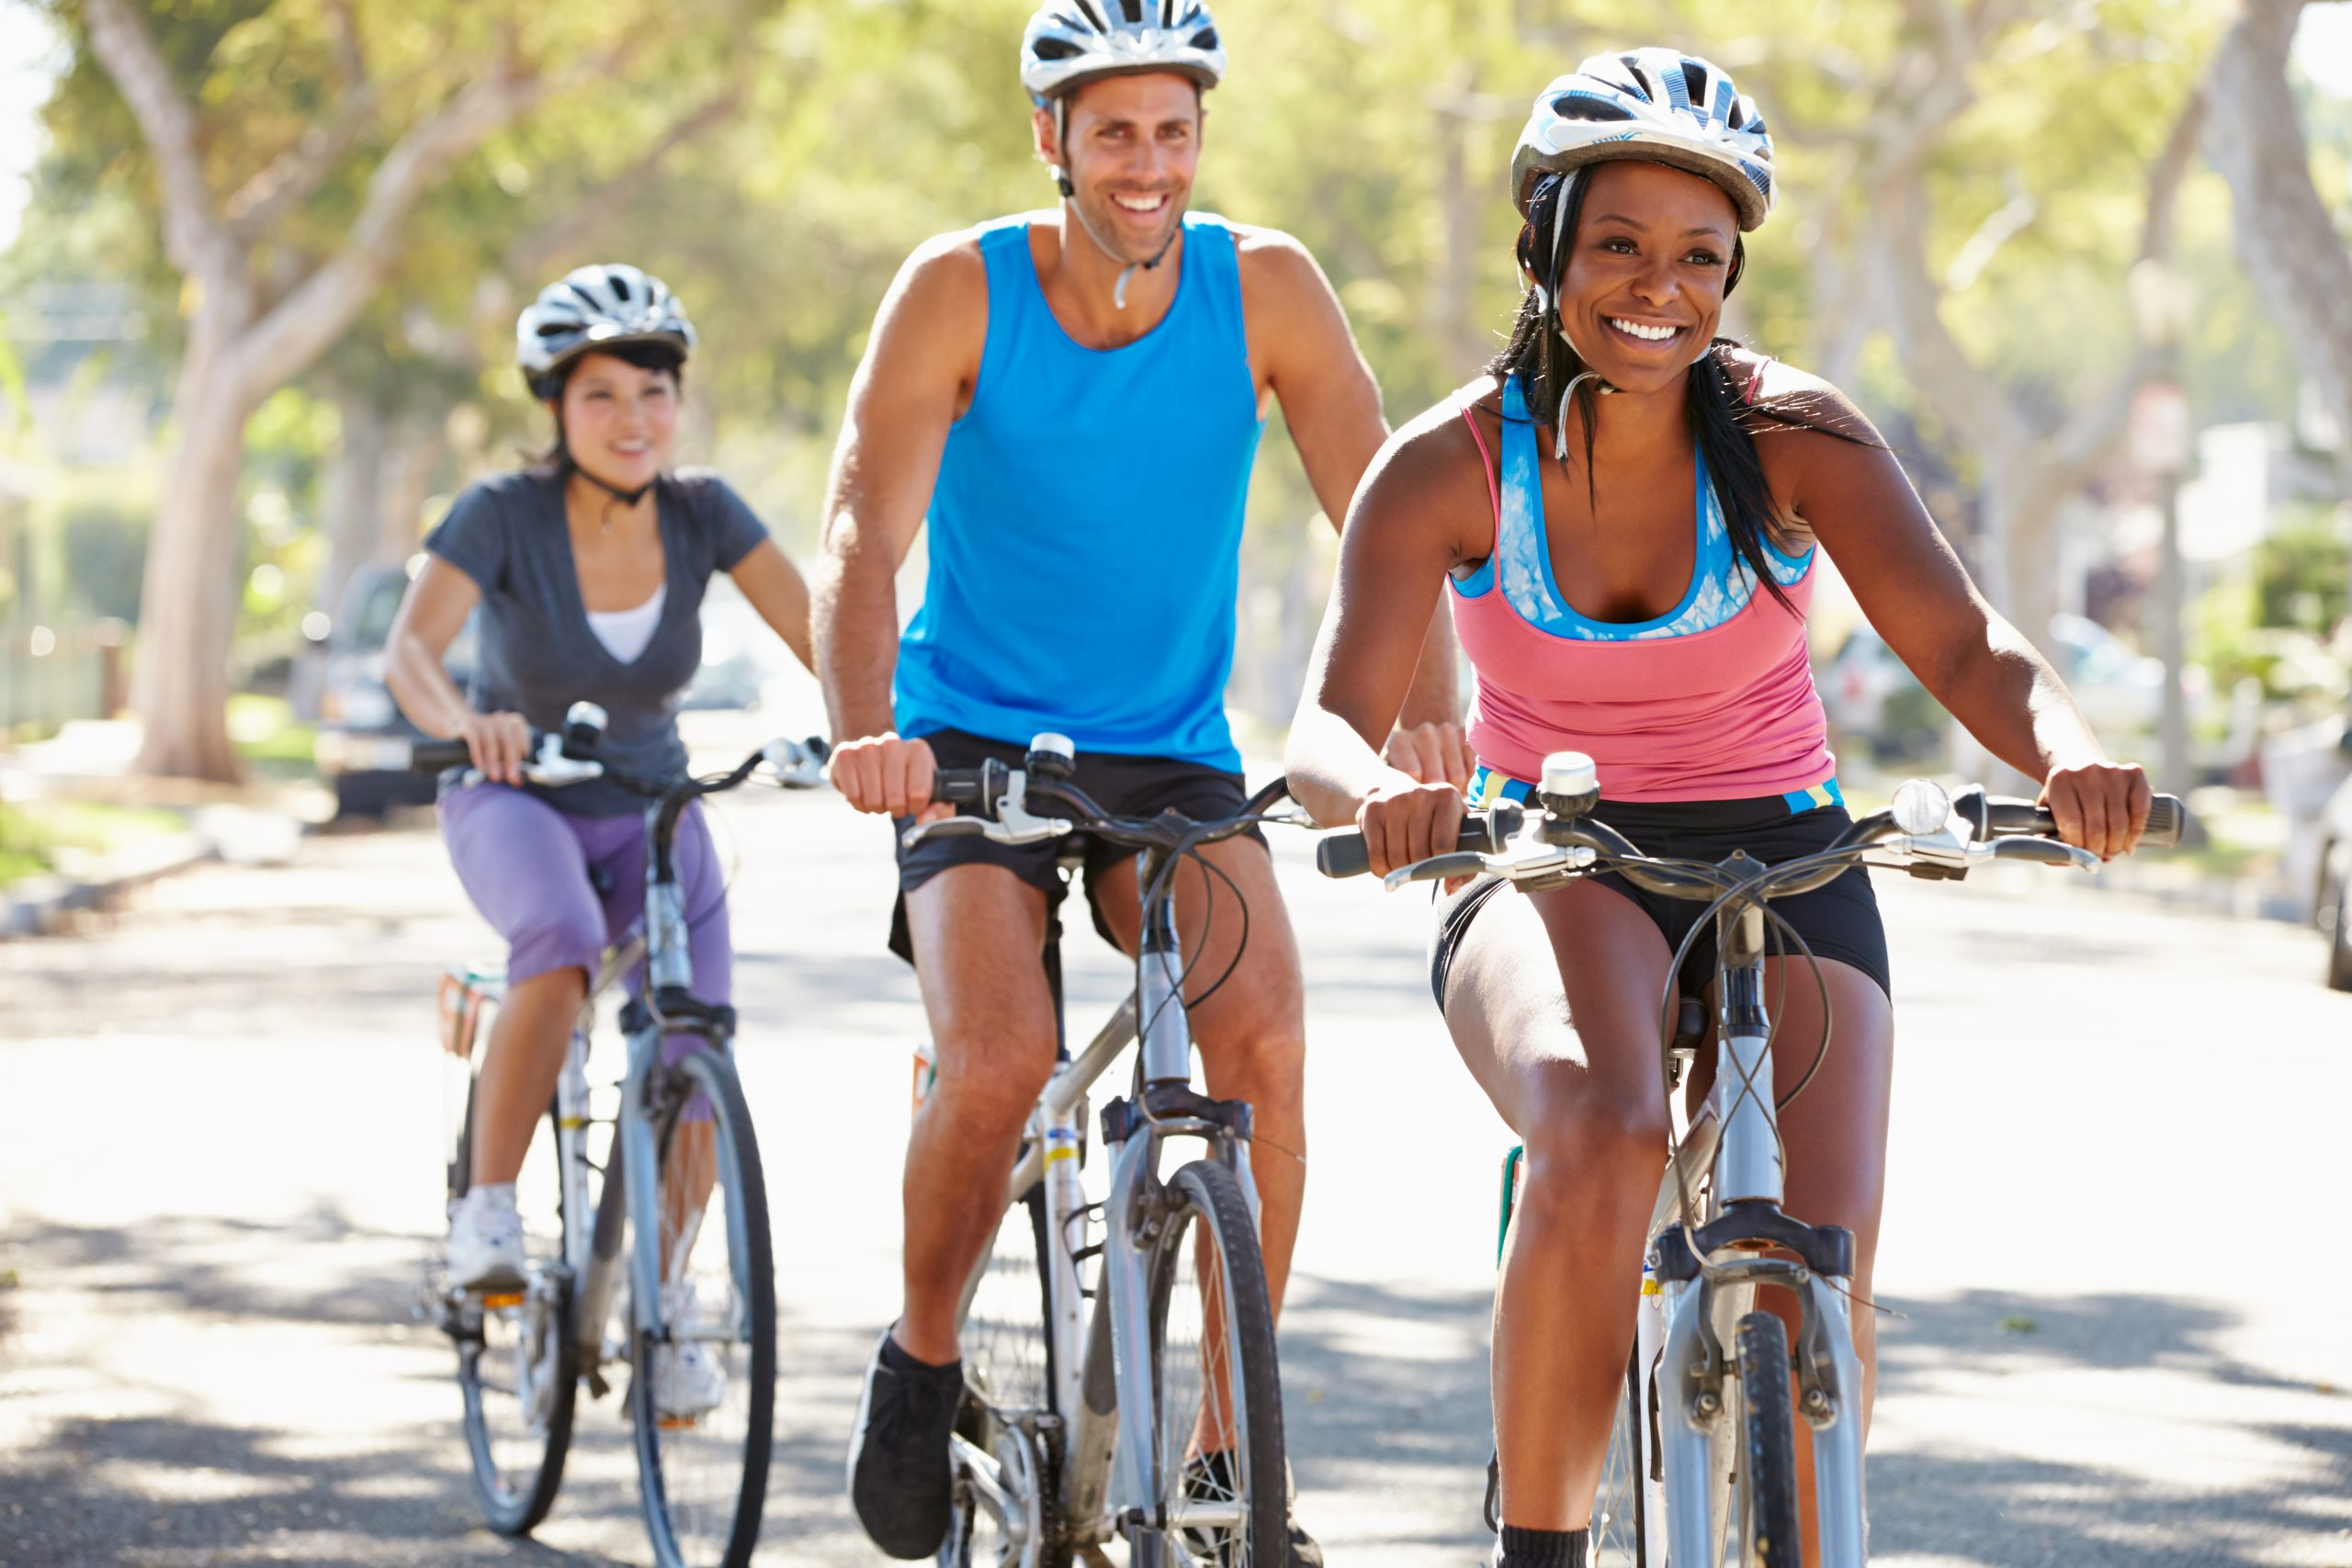 Leisure Physical Activity Is Linked with Health Benefits but Work Activity Is Not